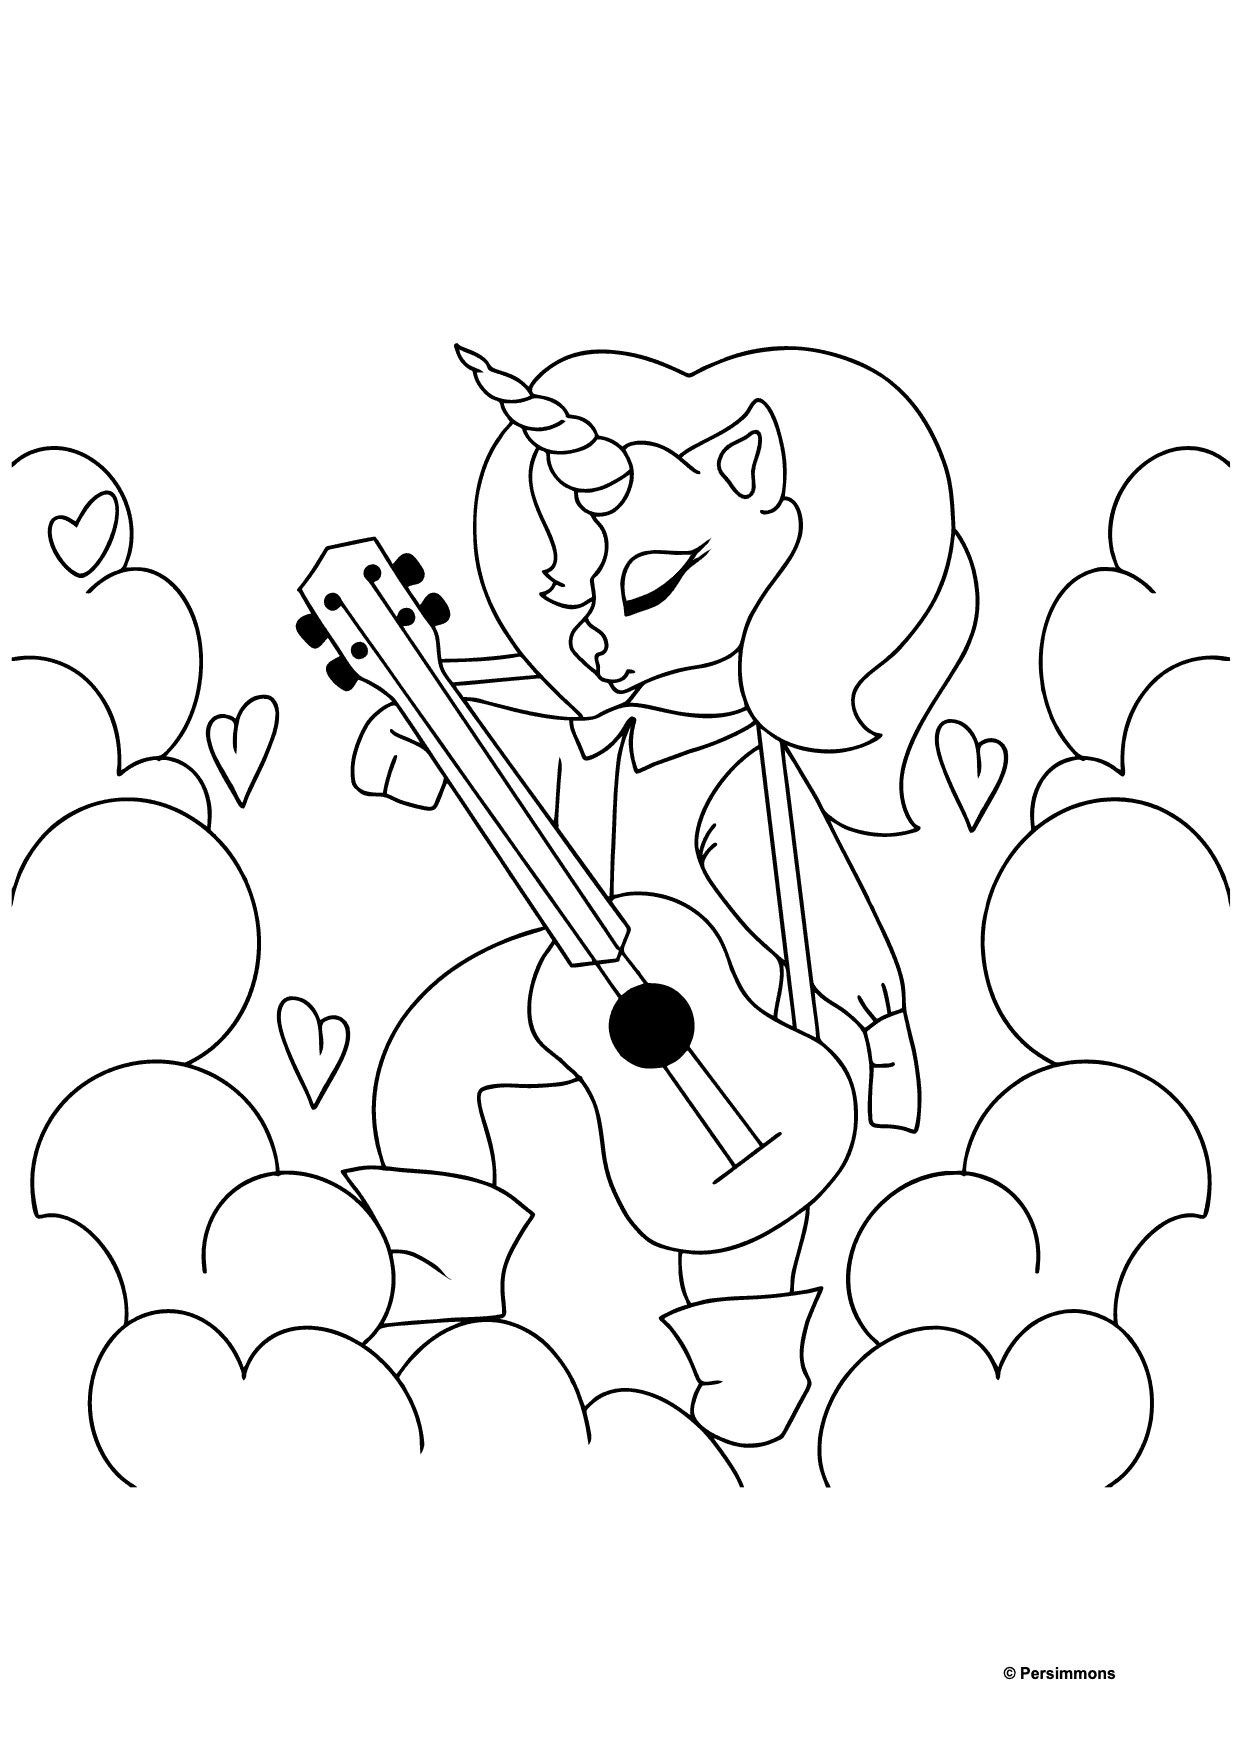 Simple Coloring Page - A Unicorn with a Guitar for Kids